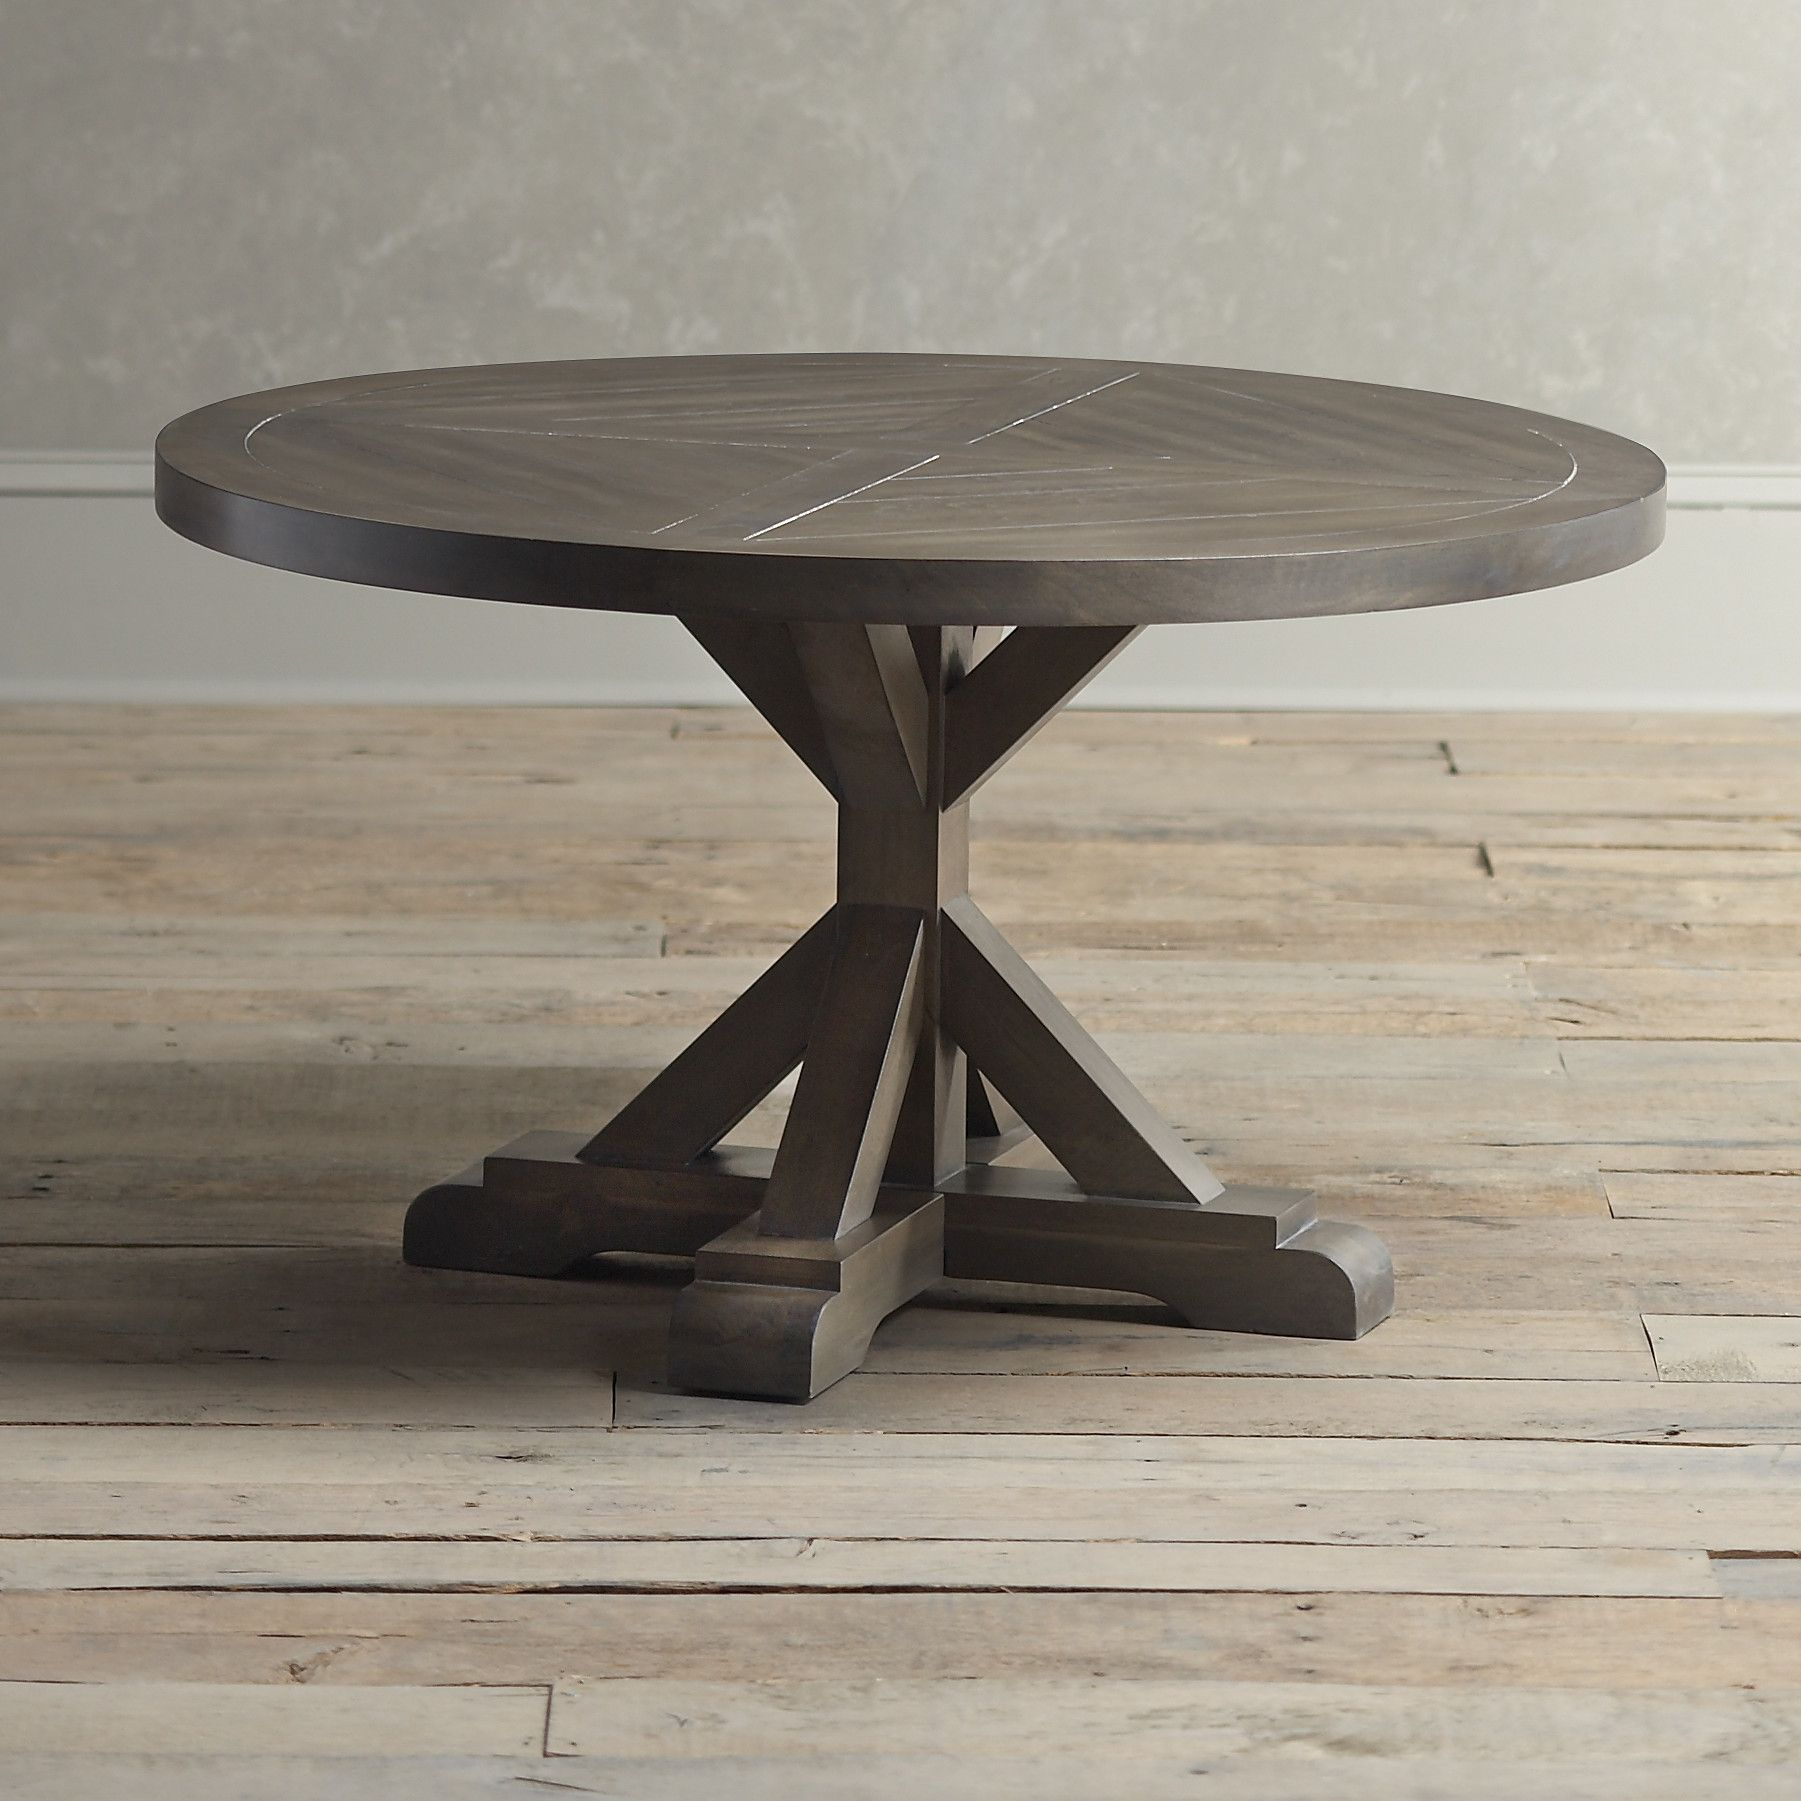 Bridgeport coffee table products pinterest products bridgeport coffee table geotapseo Choice Image